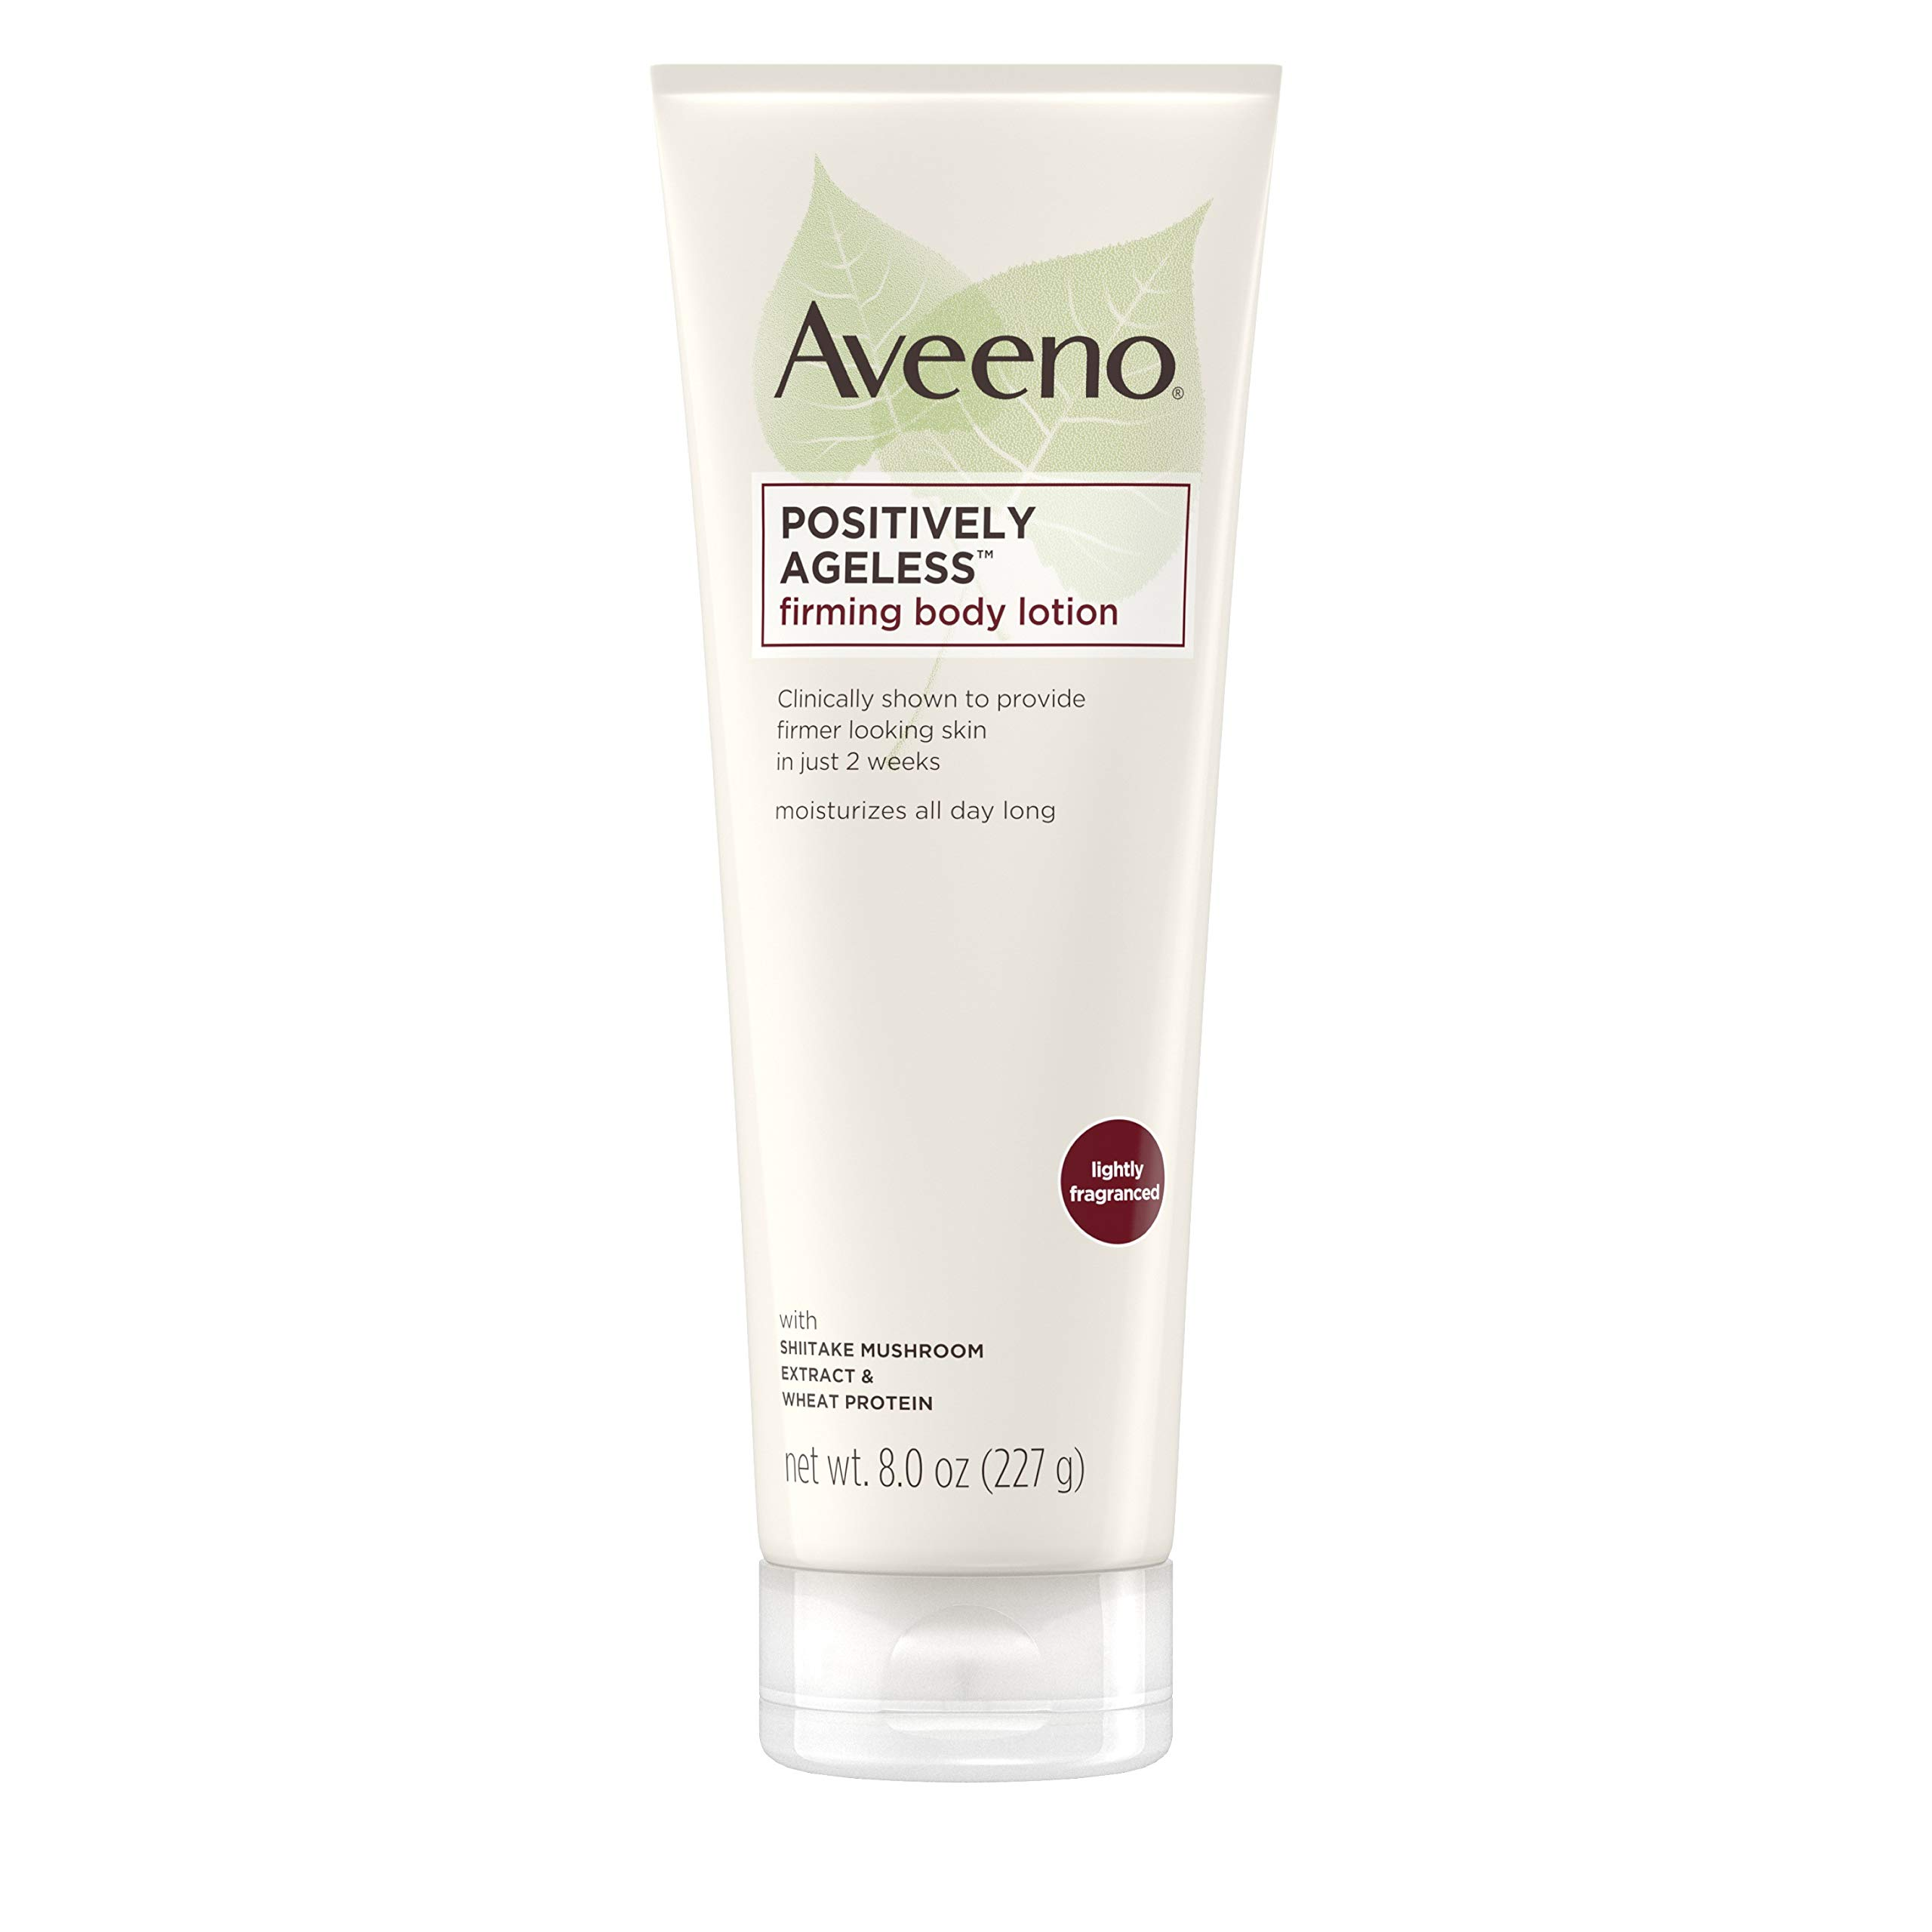 Aveeno Positively Ageless Anti-Aging Firming Body Lotion with Shiitake Mushroom complex & Wheat Protein, Lightweight & Non-Greasy Daily Lotion to Improve Skin Elasticity & Texture, 8 oz (2 Pack) by Aveeno